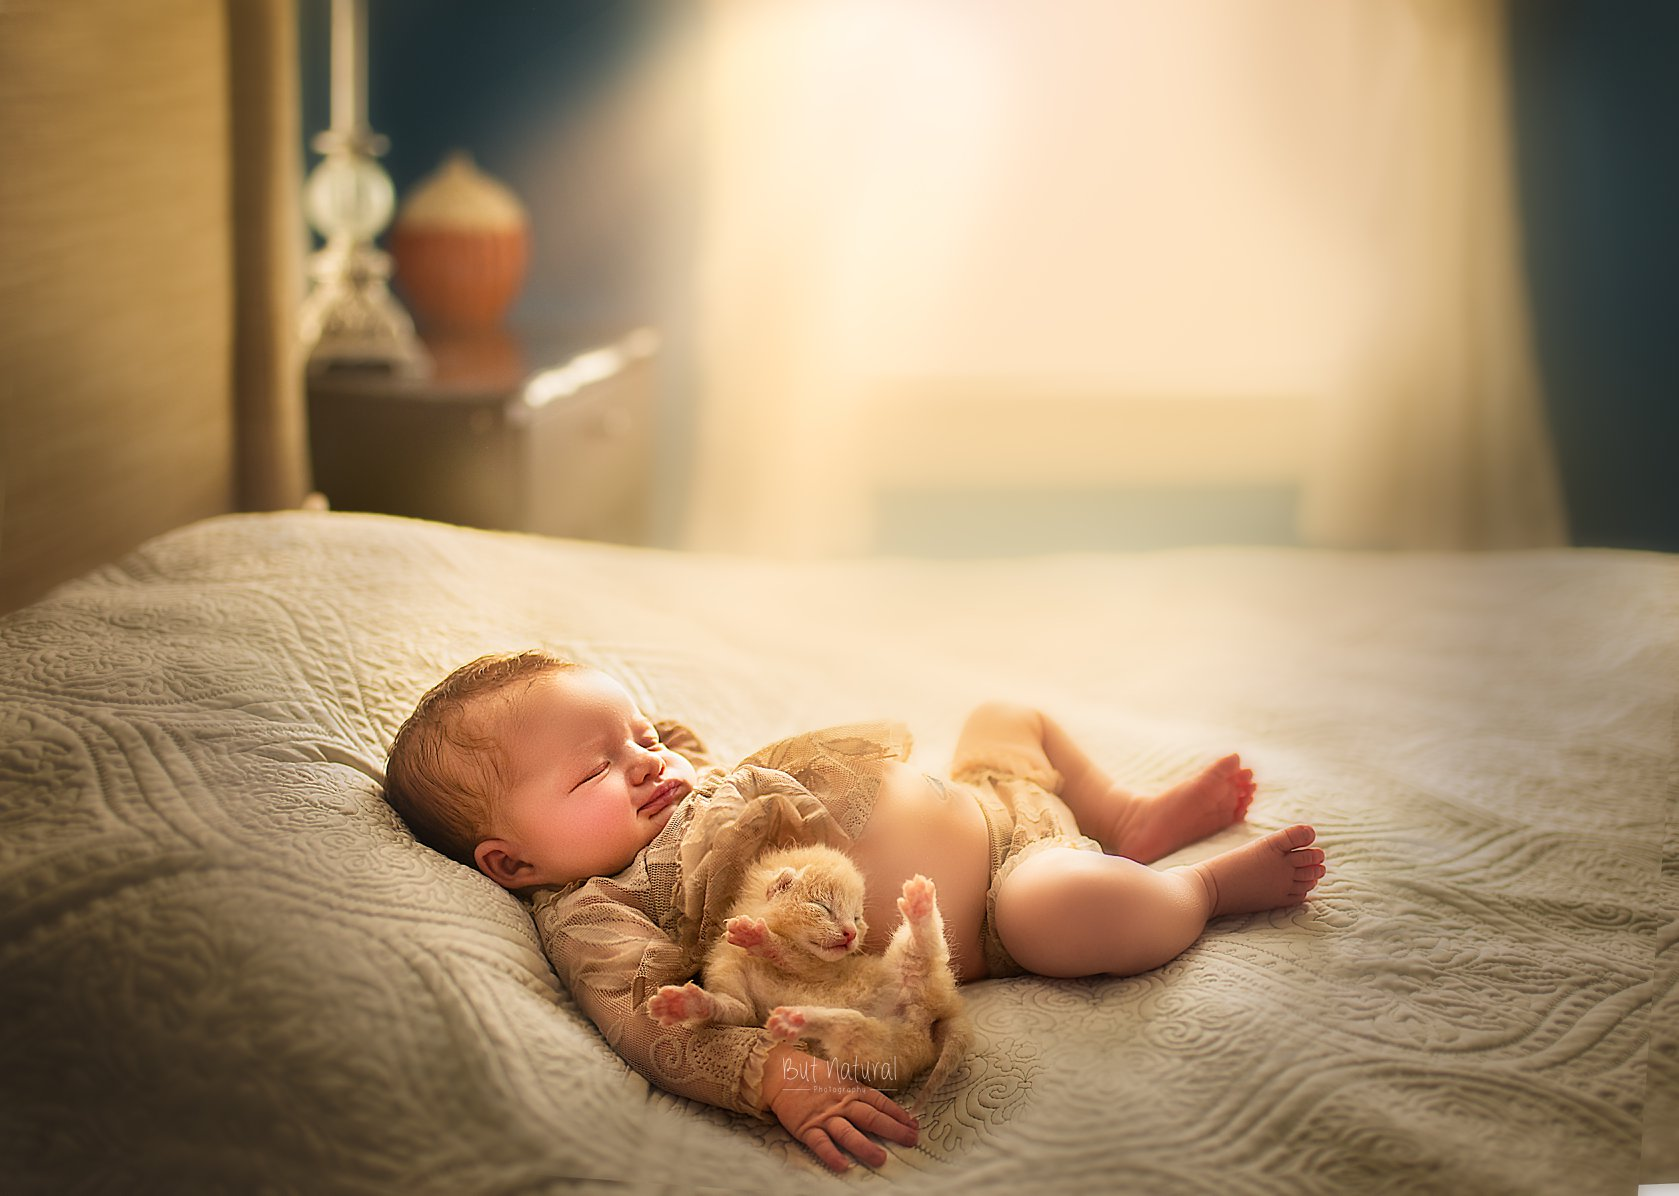 newborn baby with kitten and puppy photoshoot idea by Sujata Setia | But Natural Photography